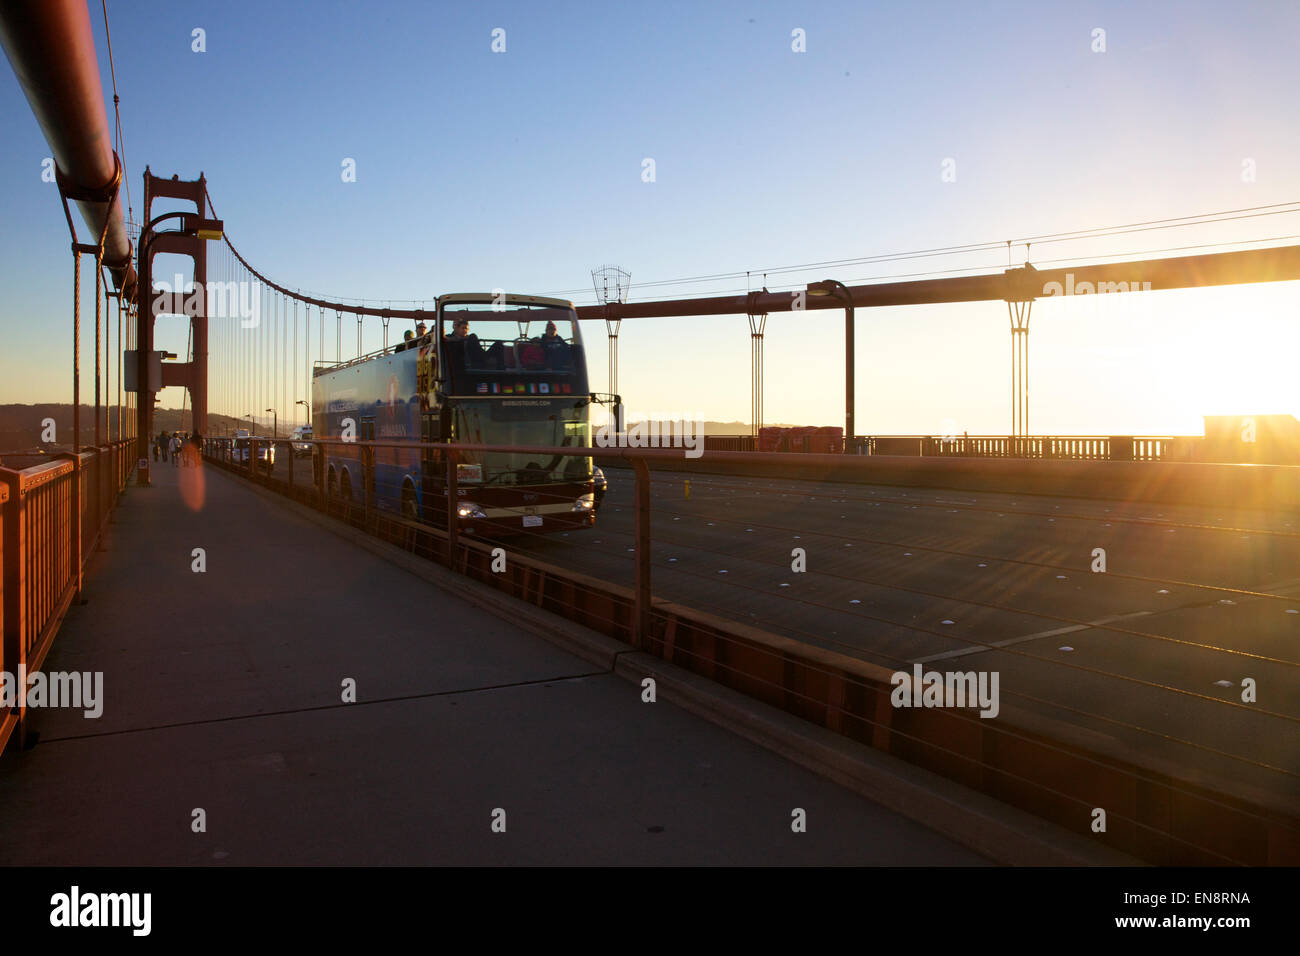 A double decker tourist bus crosses over the Golden Gate Bridge in San Francisco California at sunset. - Stock Image